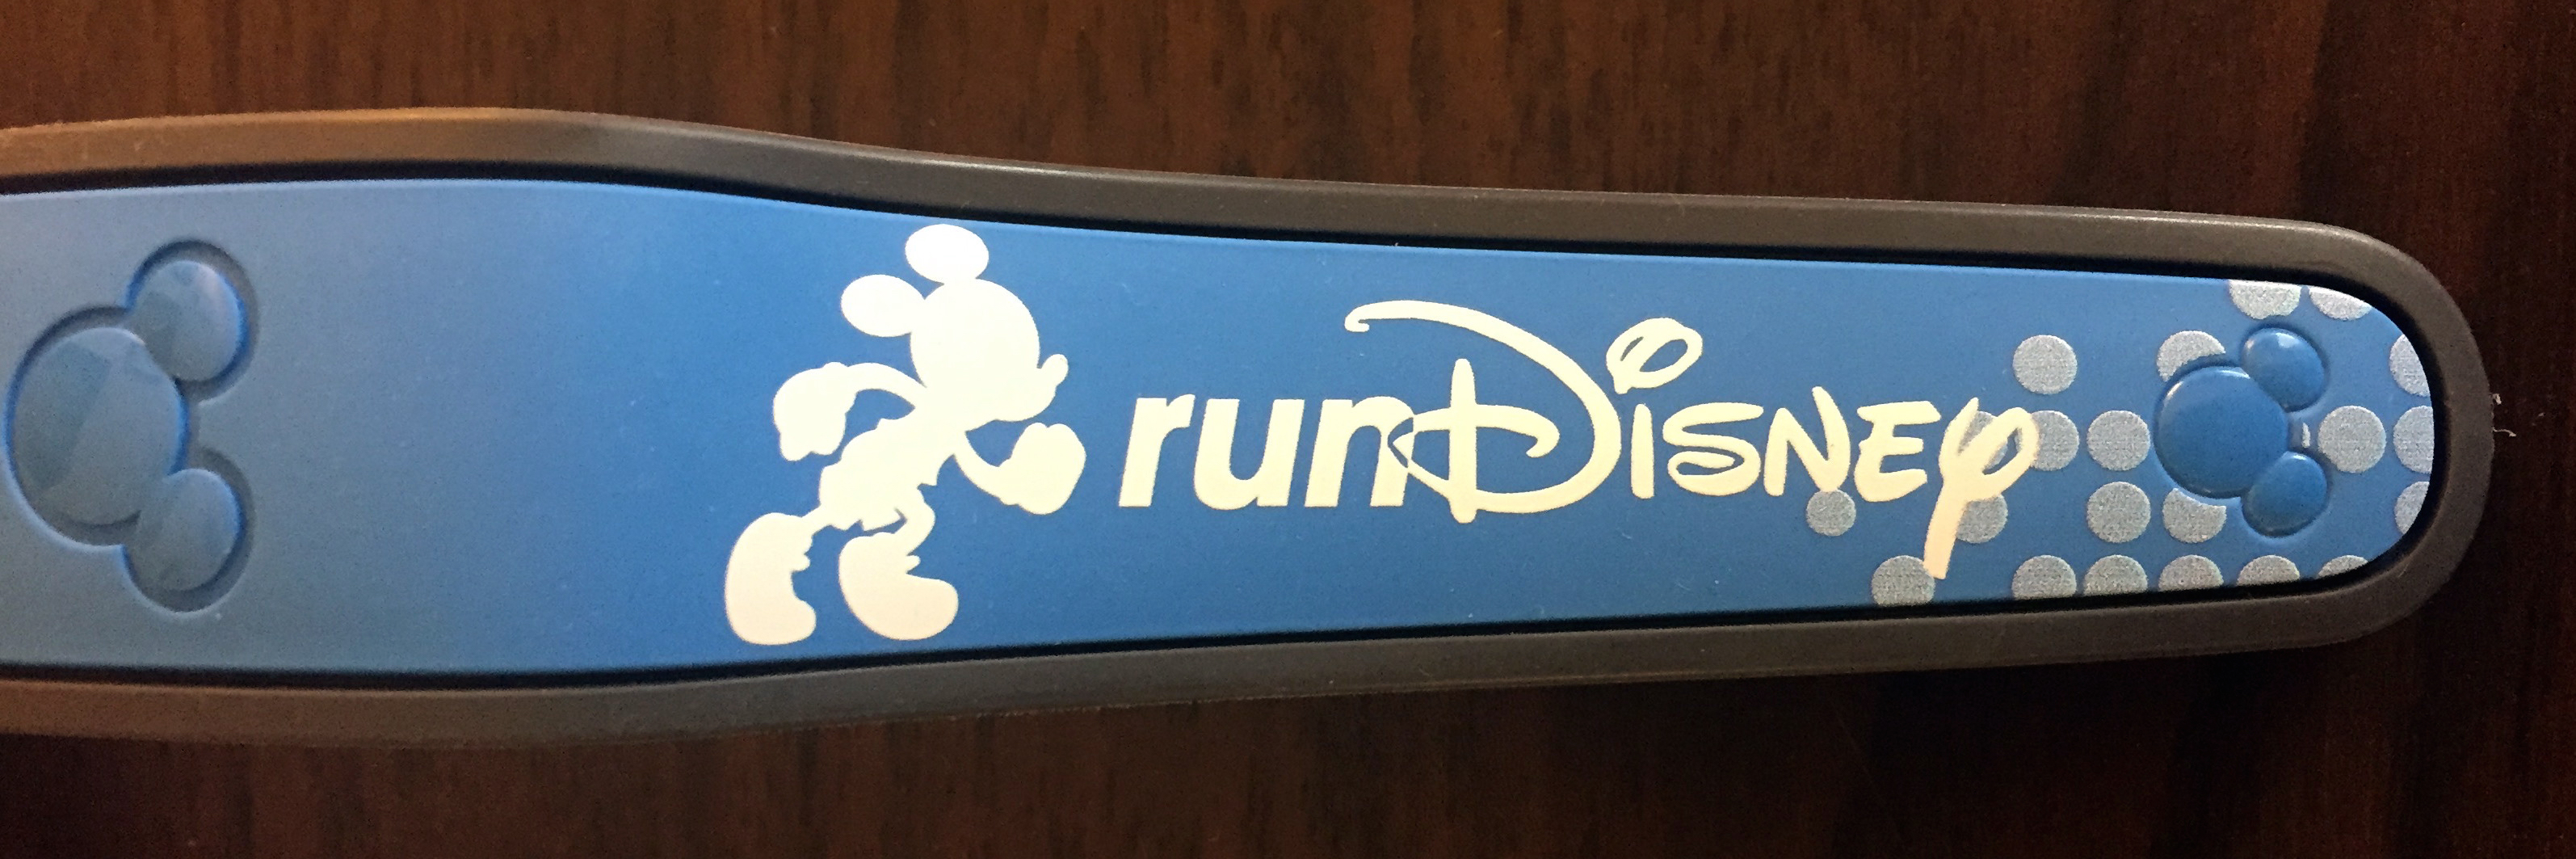 rundisney_blue_side